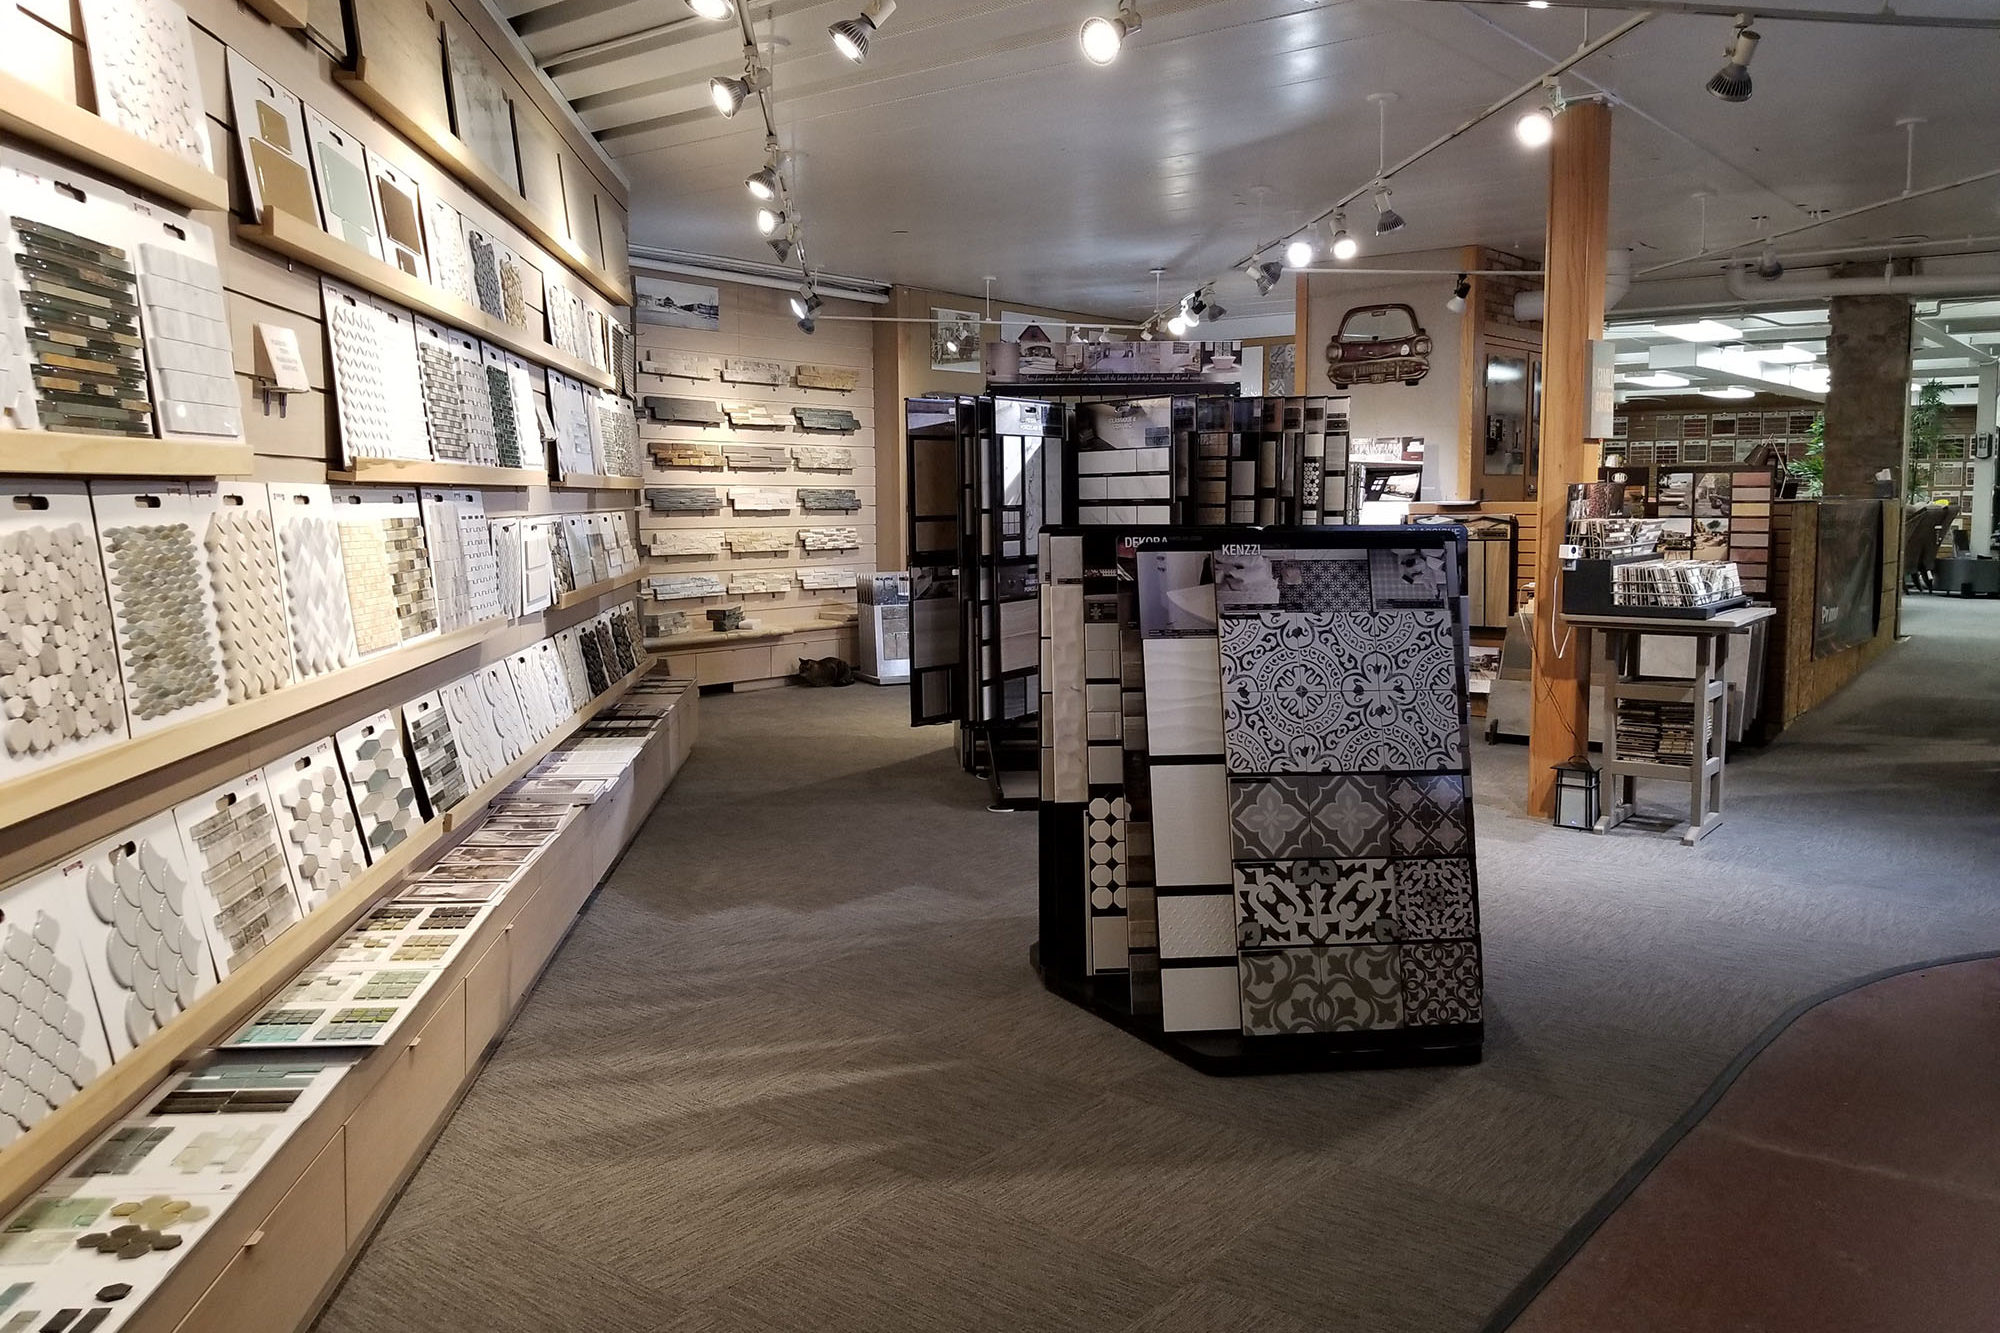 showroom display of stone, tile and flooring at landscaping supply store